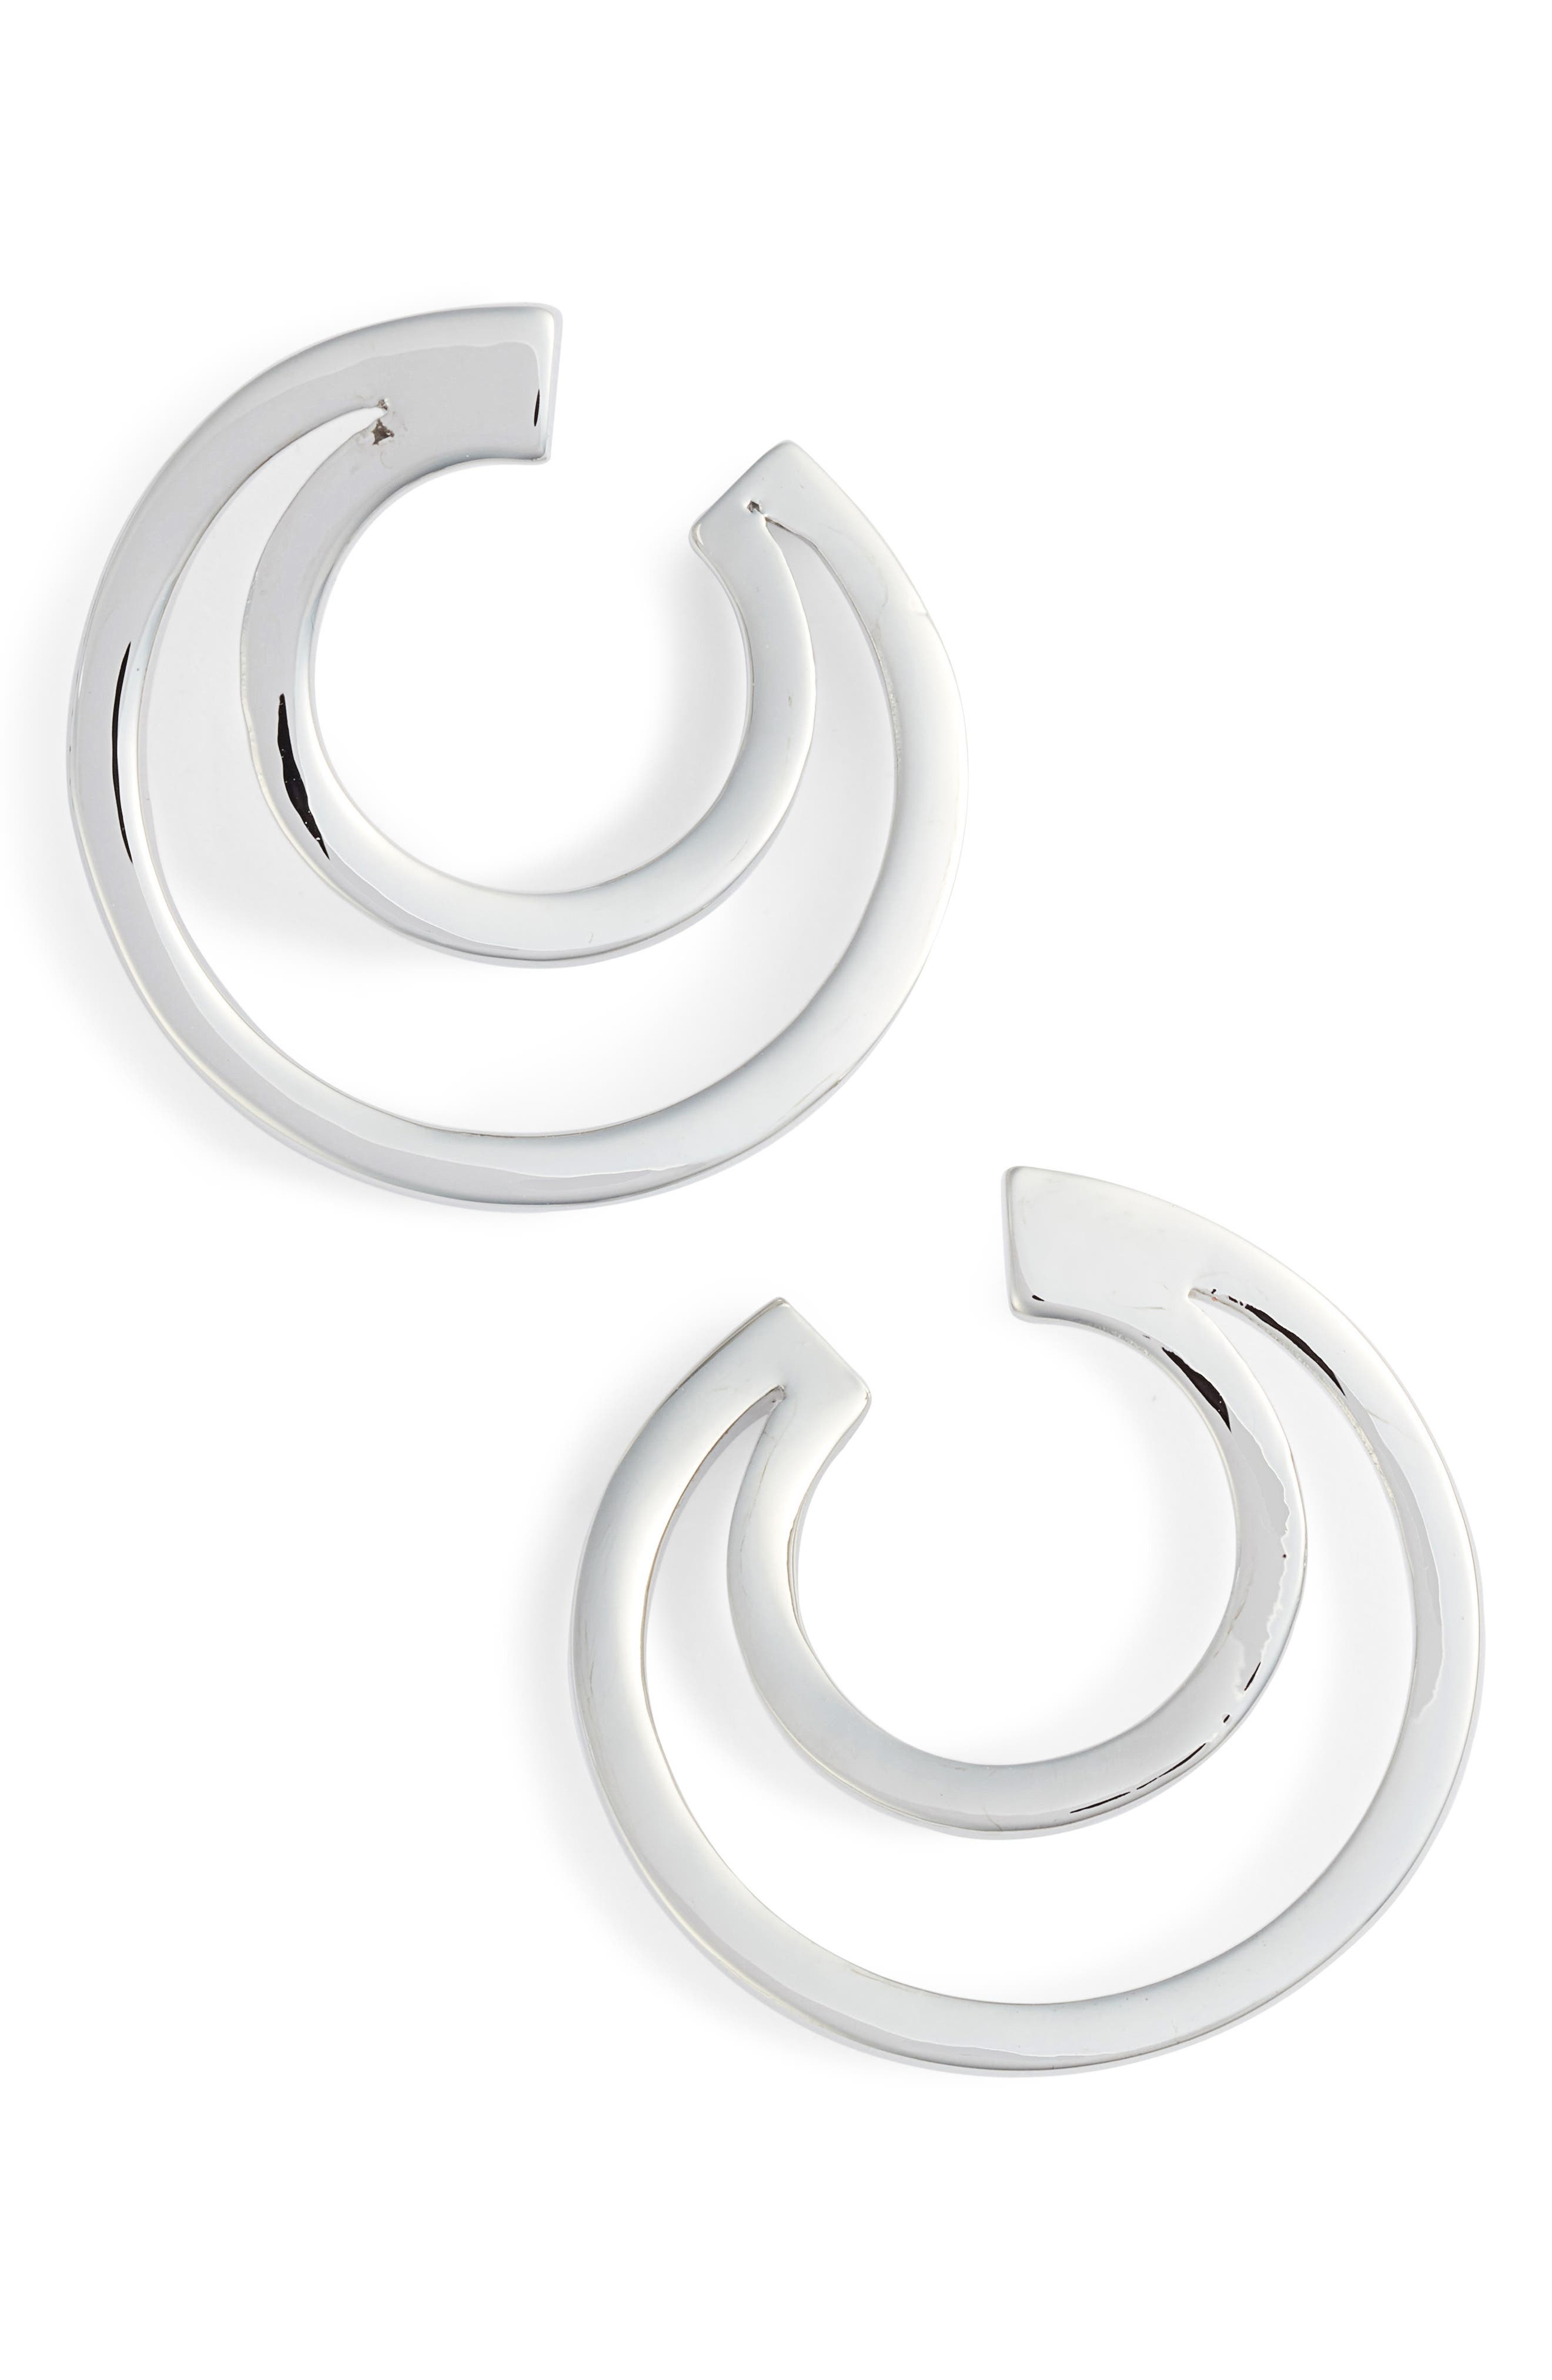 Polished Curved Earrings,                             Main thumbnail 1, color,                             040